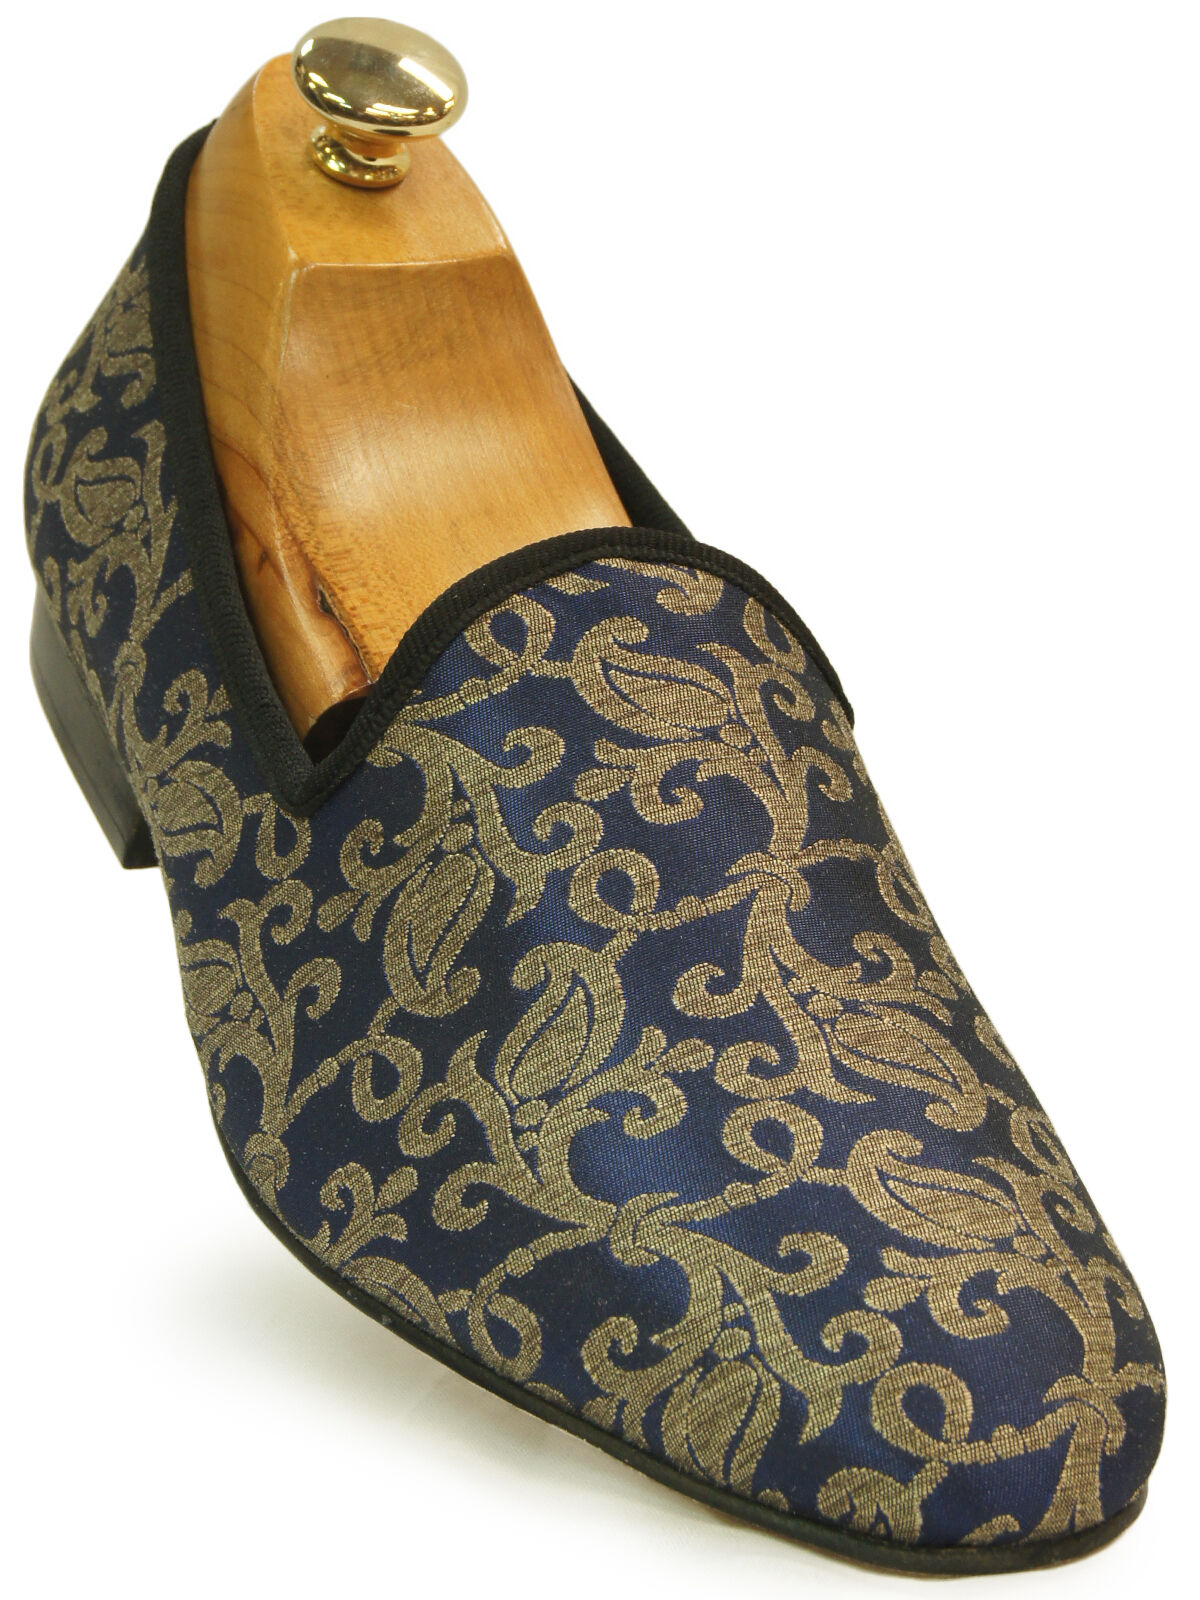 Stacy Adams Venice Navy Blue Gold Elegant Loafer Tapestry Pattern Slip On Loafer Elegant Shoe d77fe1